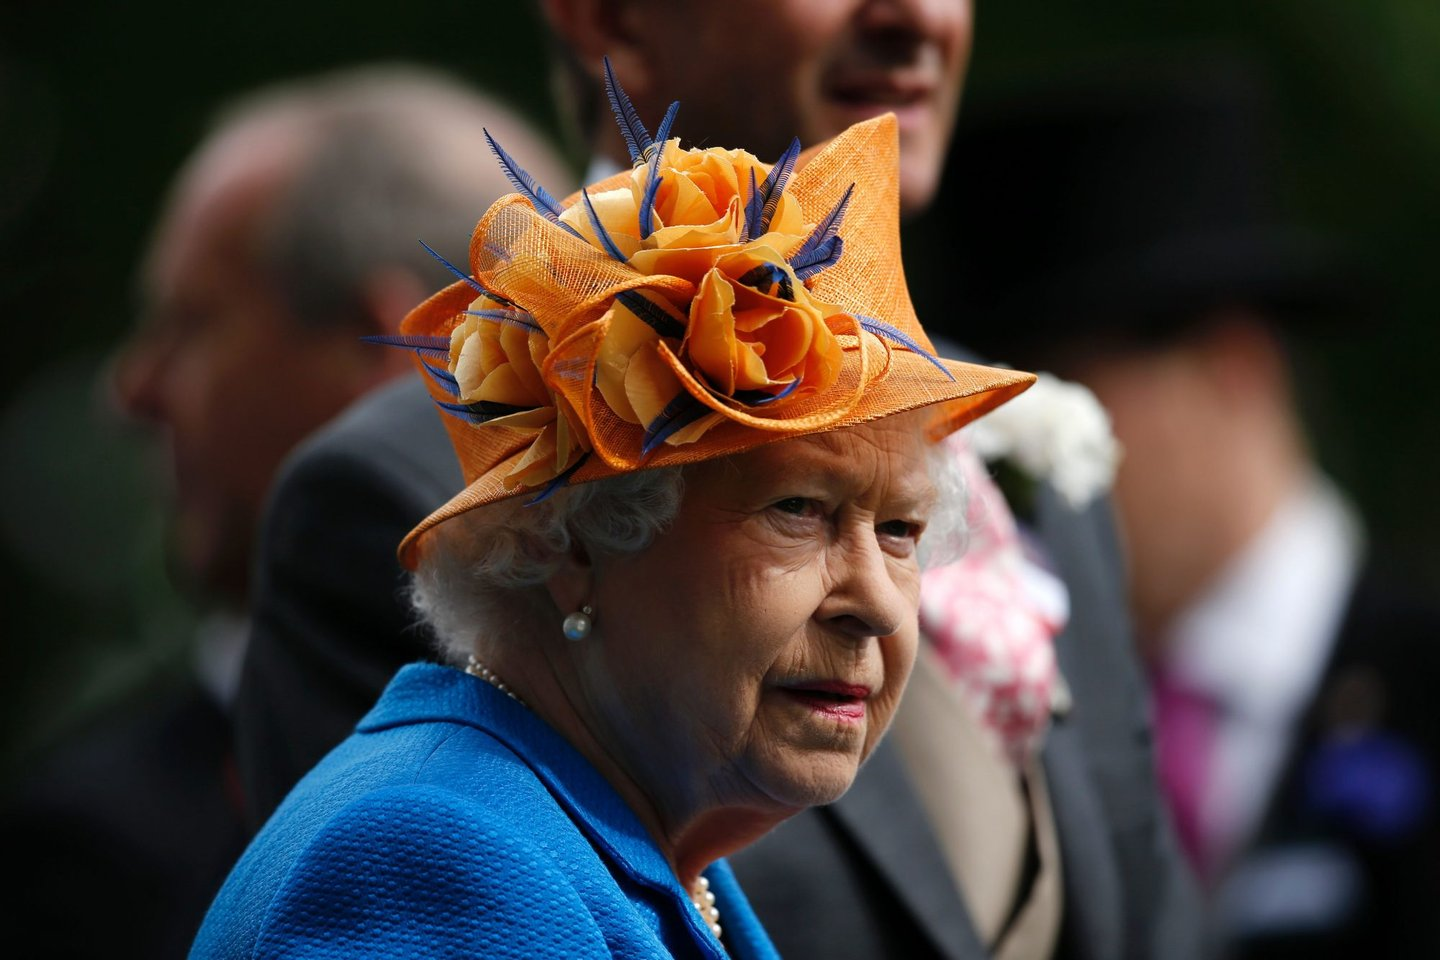 Britain's Queen Elizabeth II looks on during the presentation ceremony for the Gold Cup during Ladies' day at Royal Ascot horse racing meet in Ascot, west of London on June 16, 2016. The five-day meeting is one of the highlights of the horse racing calendar. Horse racing has been held at the famous Berkshire course since 1711 and tradition is a hallmark of the meeting. Top hats and tails remain compulsory in parts of the course while a daily procession of horse-drawn carriages brings the Queen to the course. / AFP / ADRIAN DENNIS (Photo credit should read ADRIAN DENNIS/AFP/Getty Images)